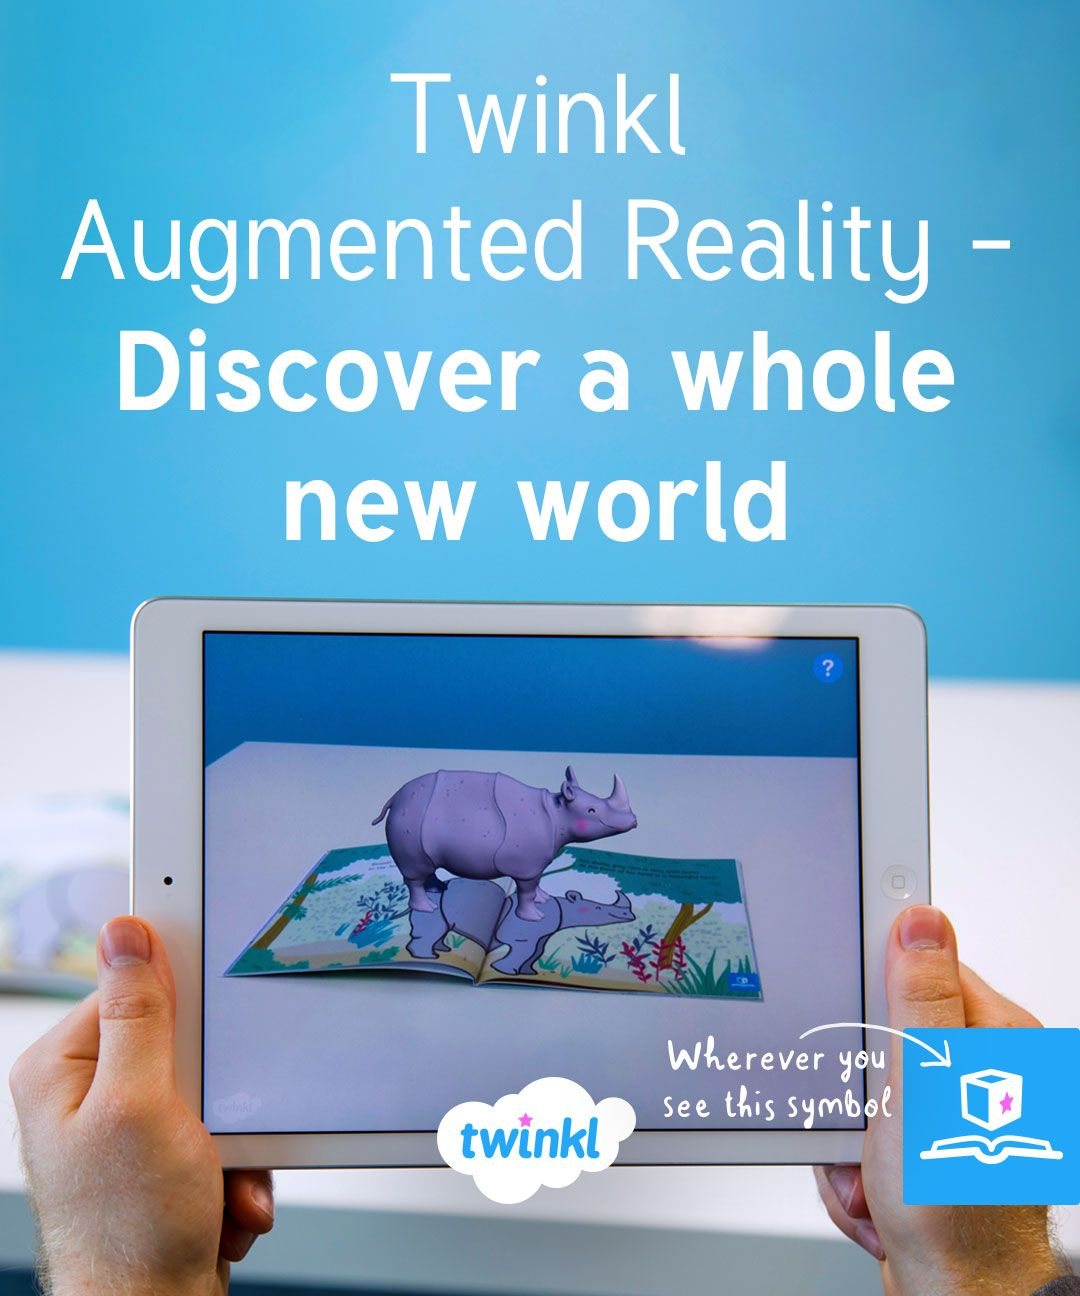 Augmented Reality in the classroom! Bring Ronald the Rhino